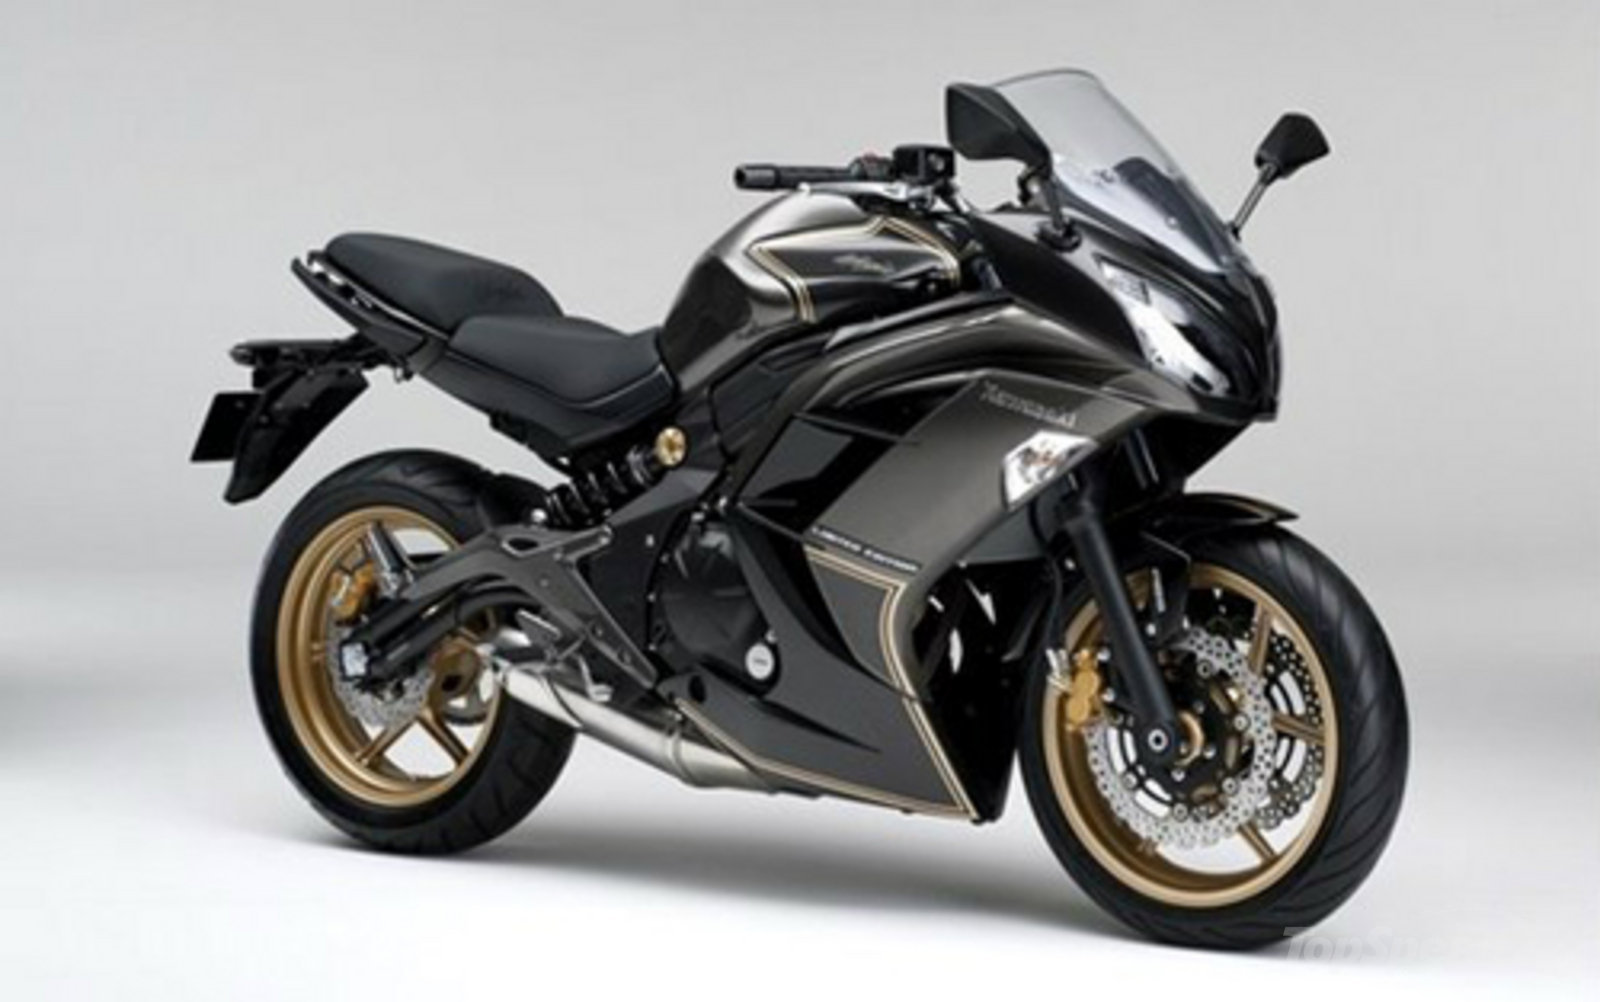 kawasaki launches new limited edition ninja 400 for the japanese market news top speed. Black Bedroom Furniture Sets. Home Design Ideas